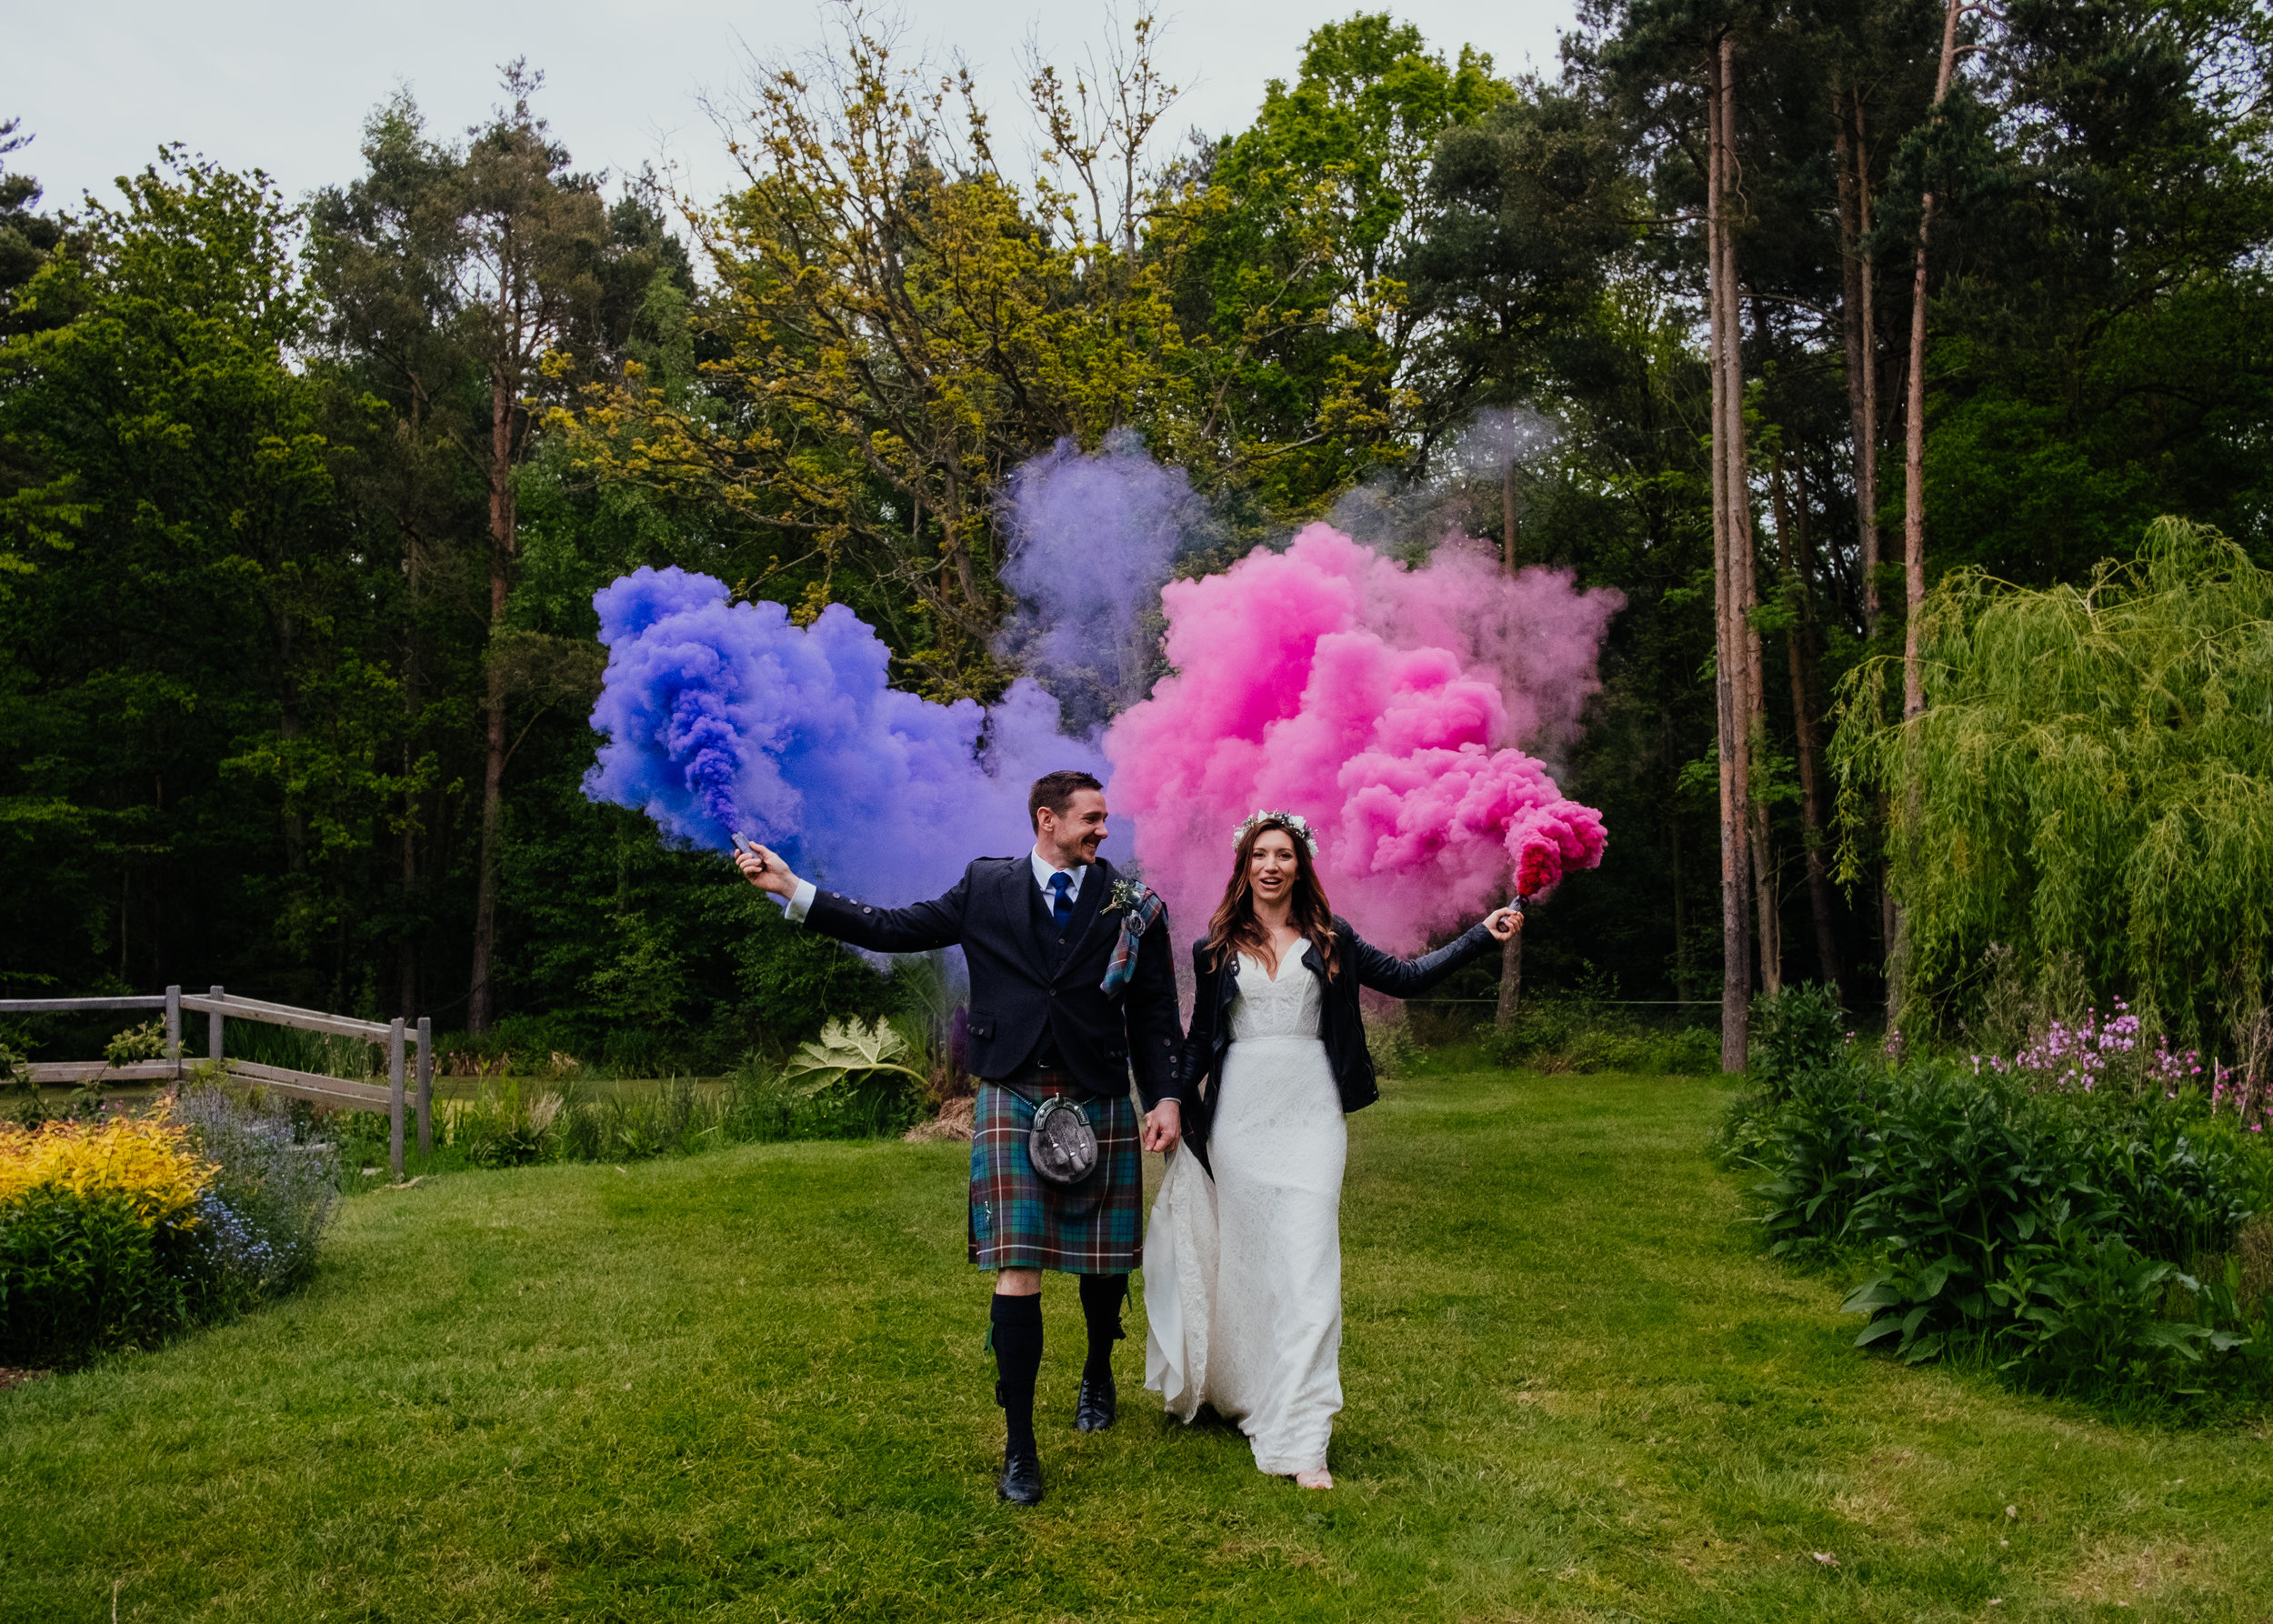 Bride and groom walking along with coloured smoke grenades